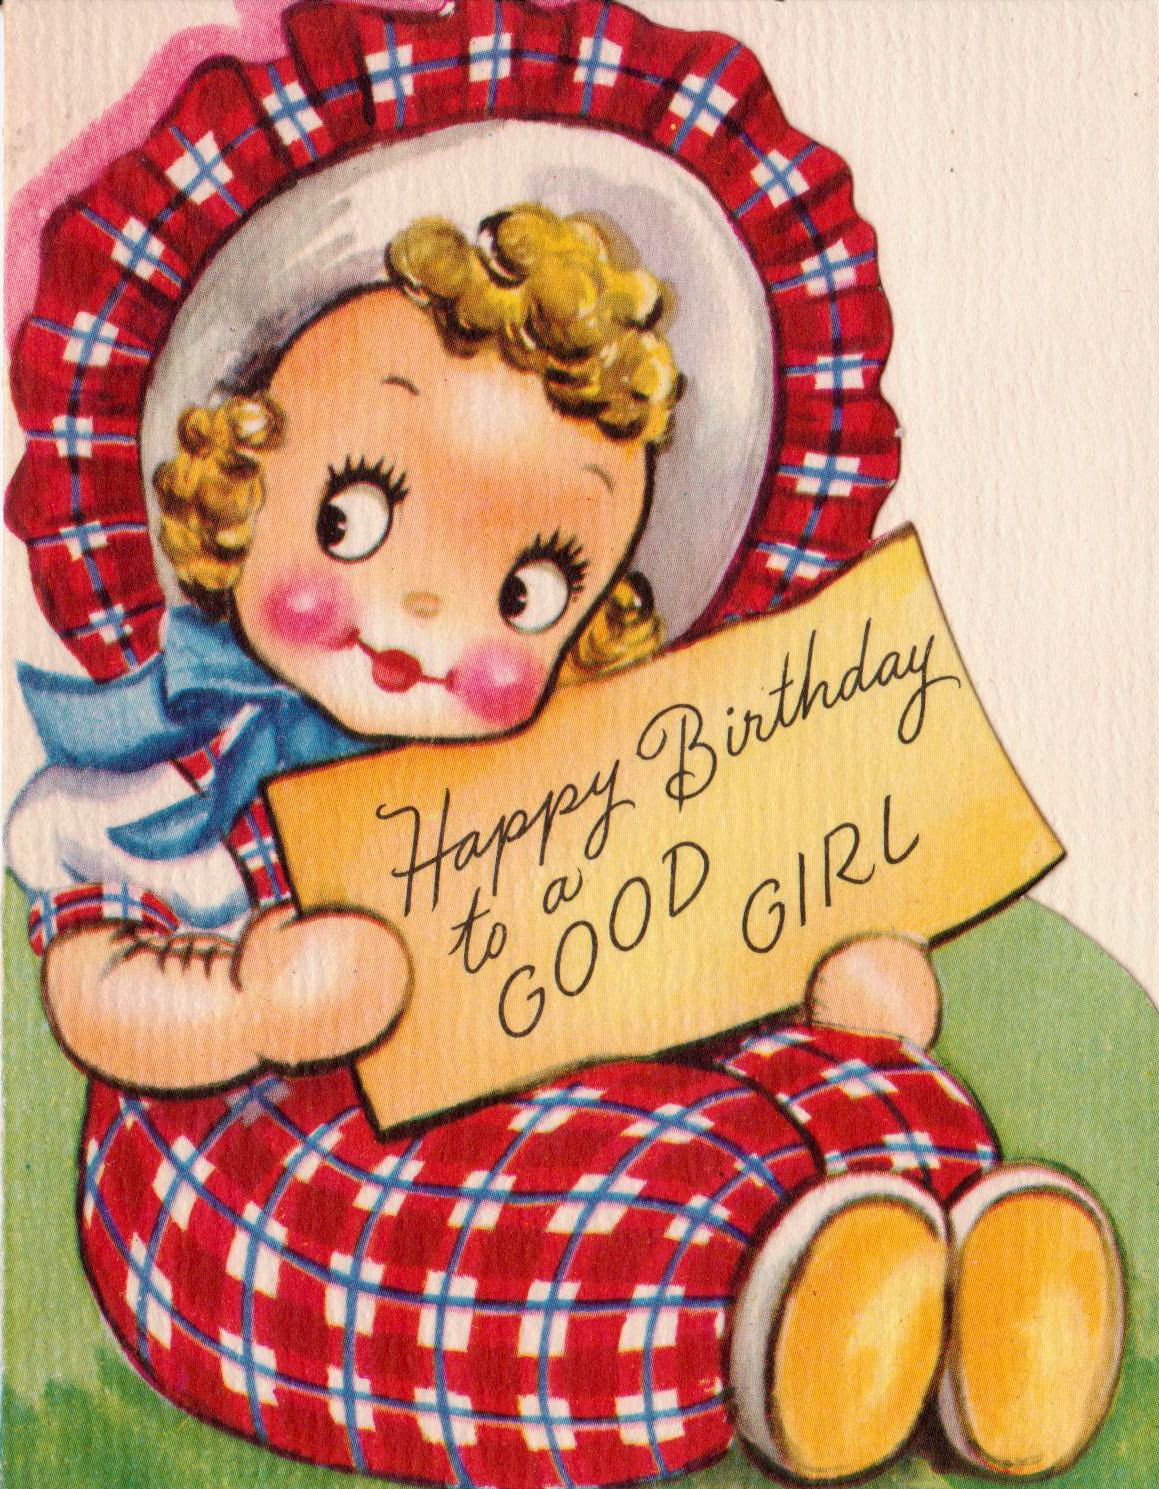 Vintage 1950s Happy Birthday To A Good Girl Greetings Card B2